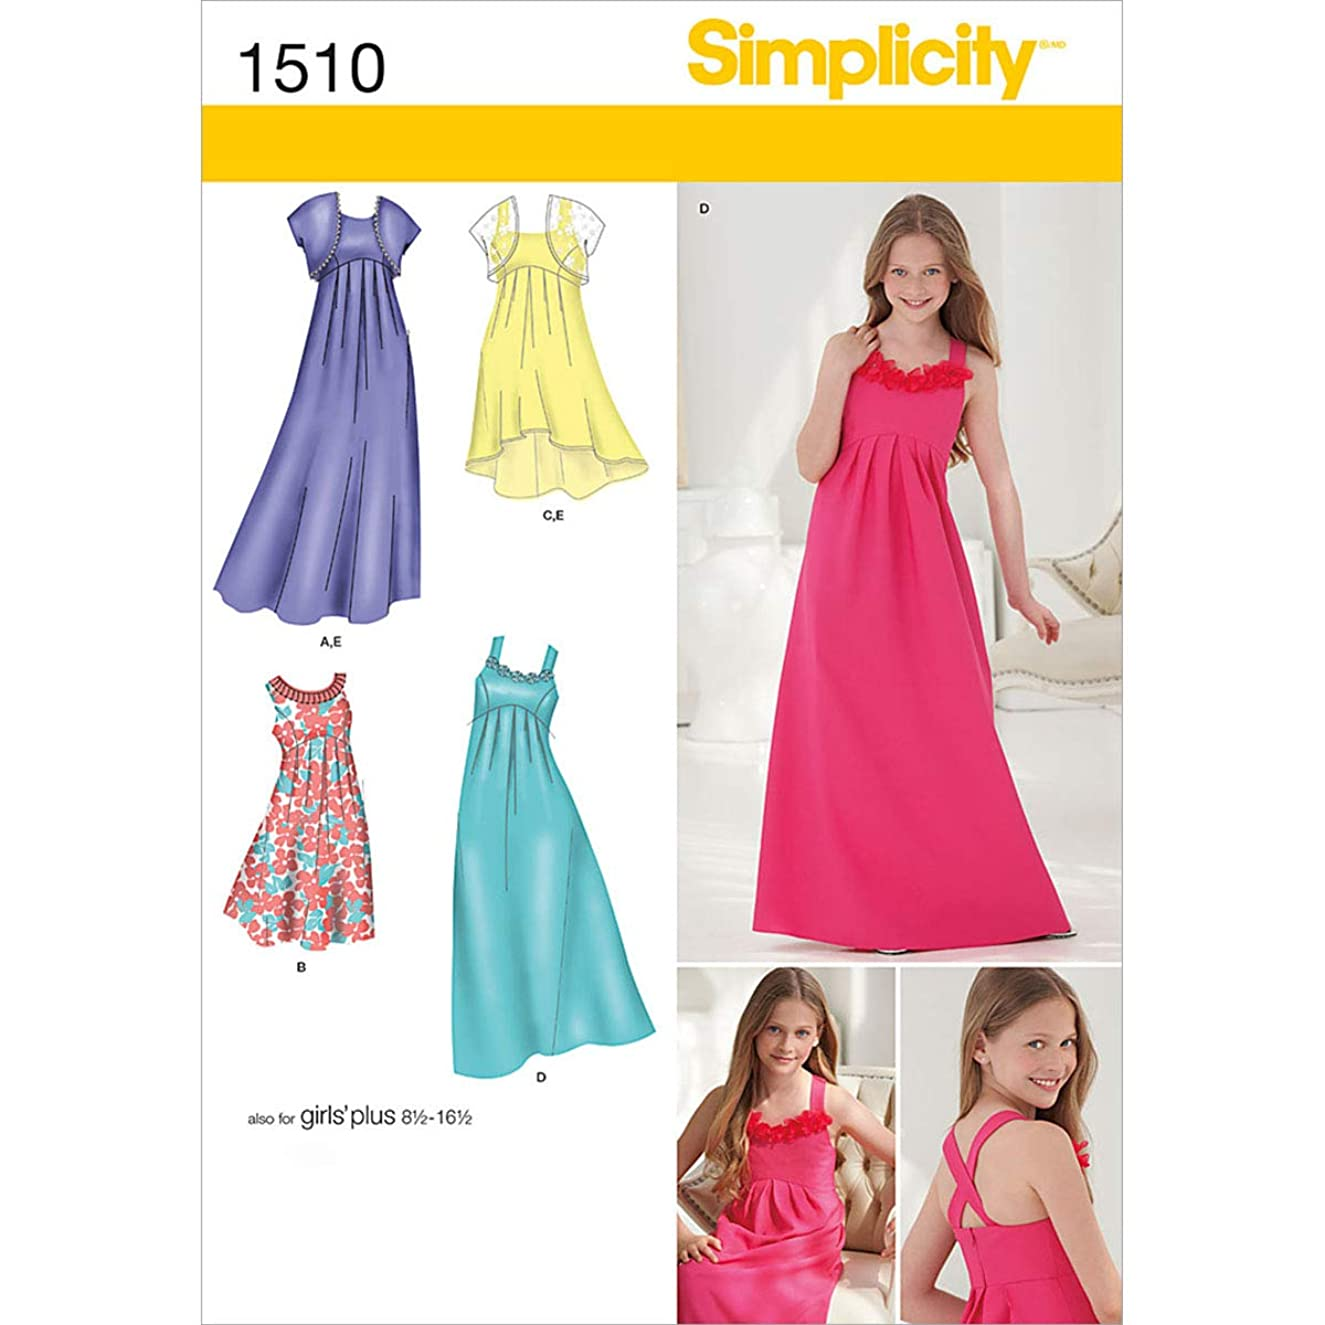 Simplicity 1510 Girls' Plus Size Special Occasion Dress Pattern and Bolero Size 8 1/2-16 1/2